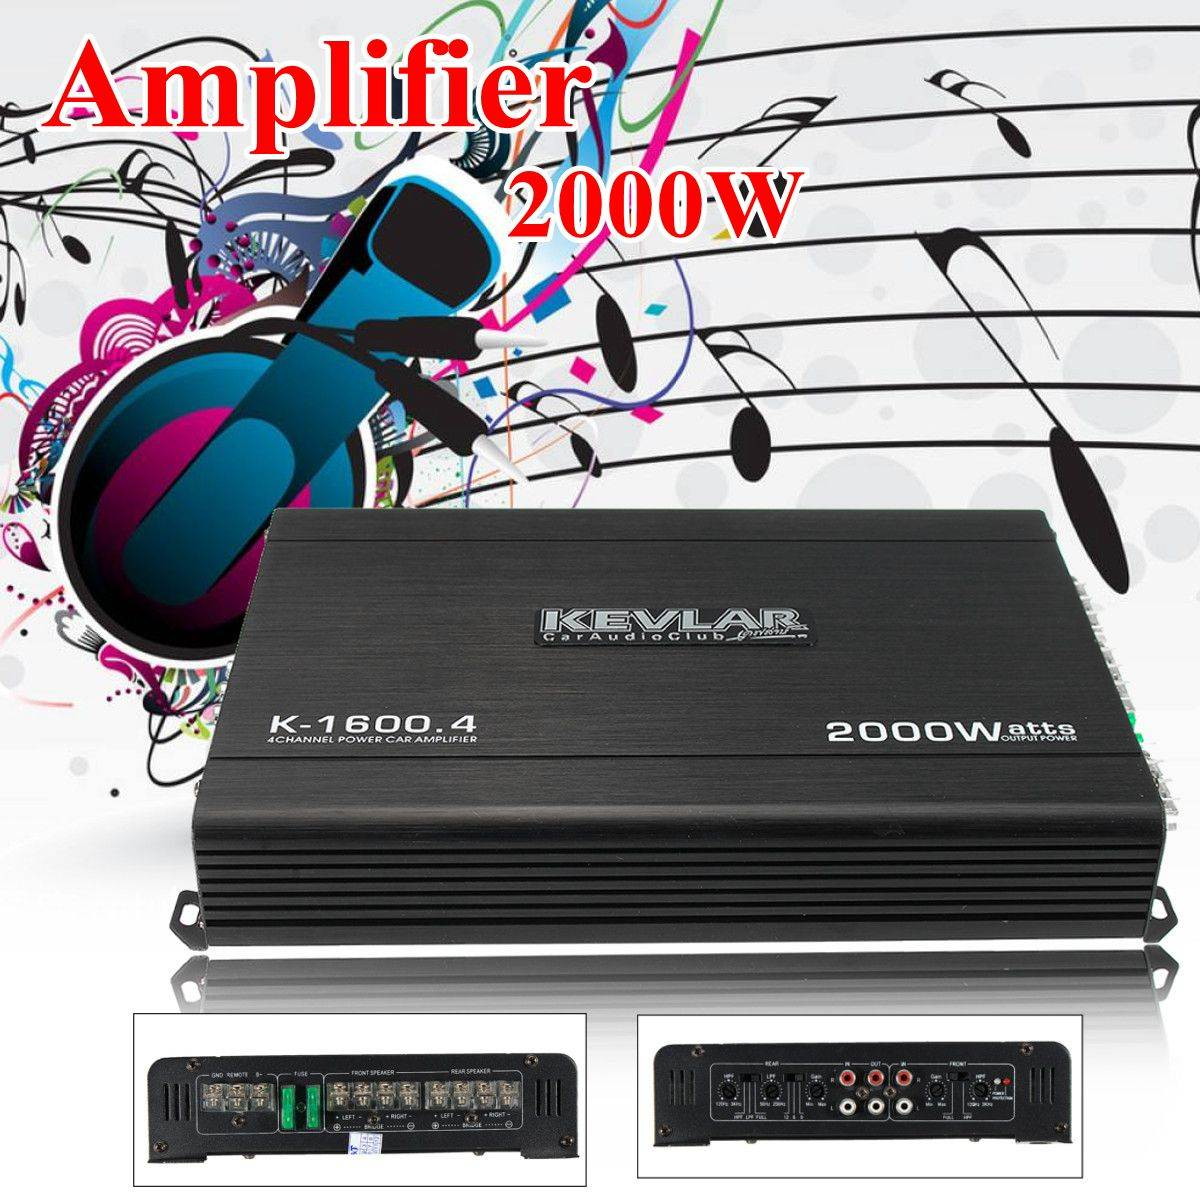 4 Channel Home Car Amplifier Audio 2000w 12dB High Power Home Car Amplifiers High Power black 12v car amplifier high power 1900w audio 4 channel 4 way amplifiers booster auto free shipping dropping